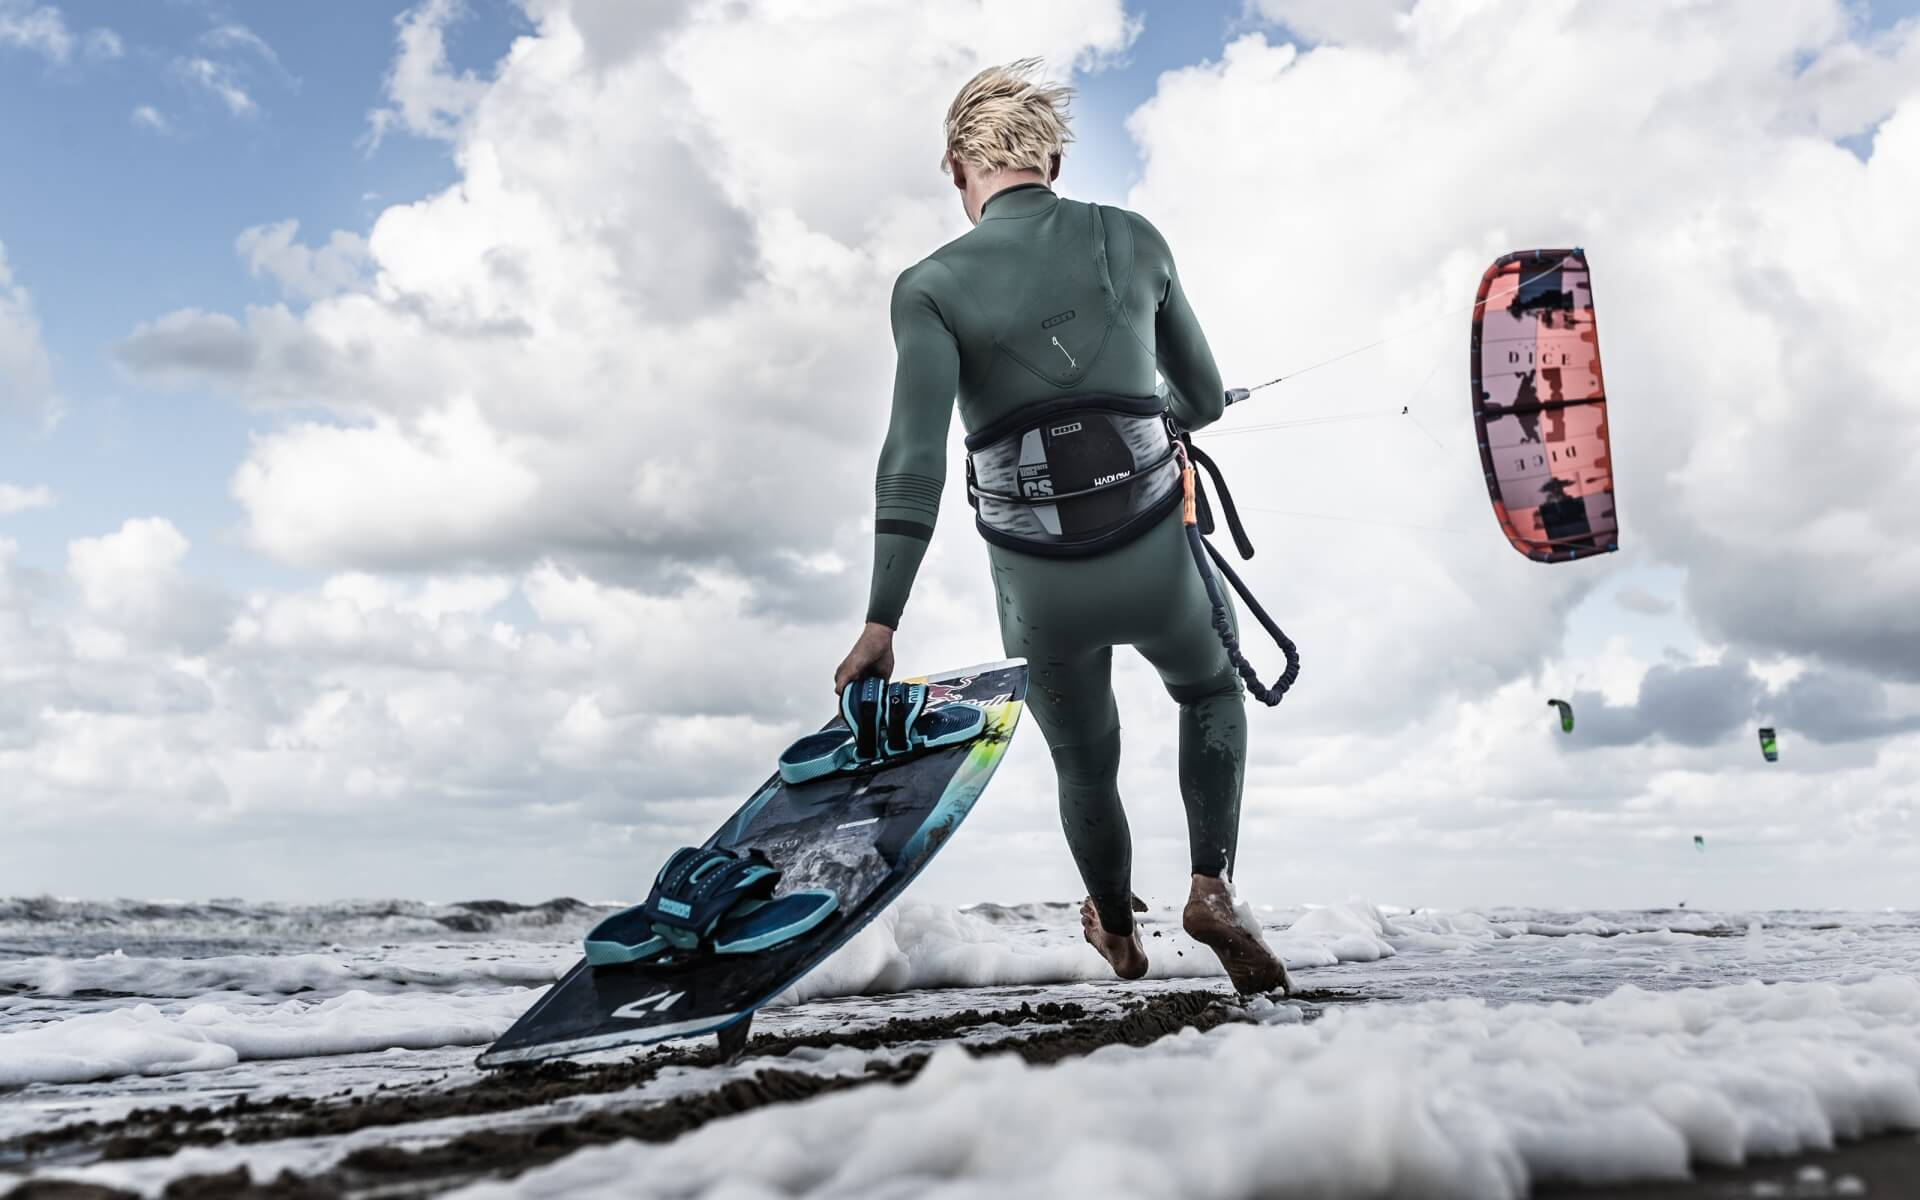 Duotone_Kiteboarding_Red_Bull_King_of_the_air_Lasse_Walker